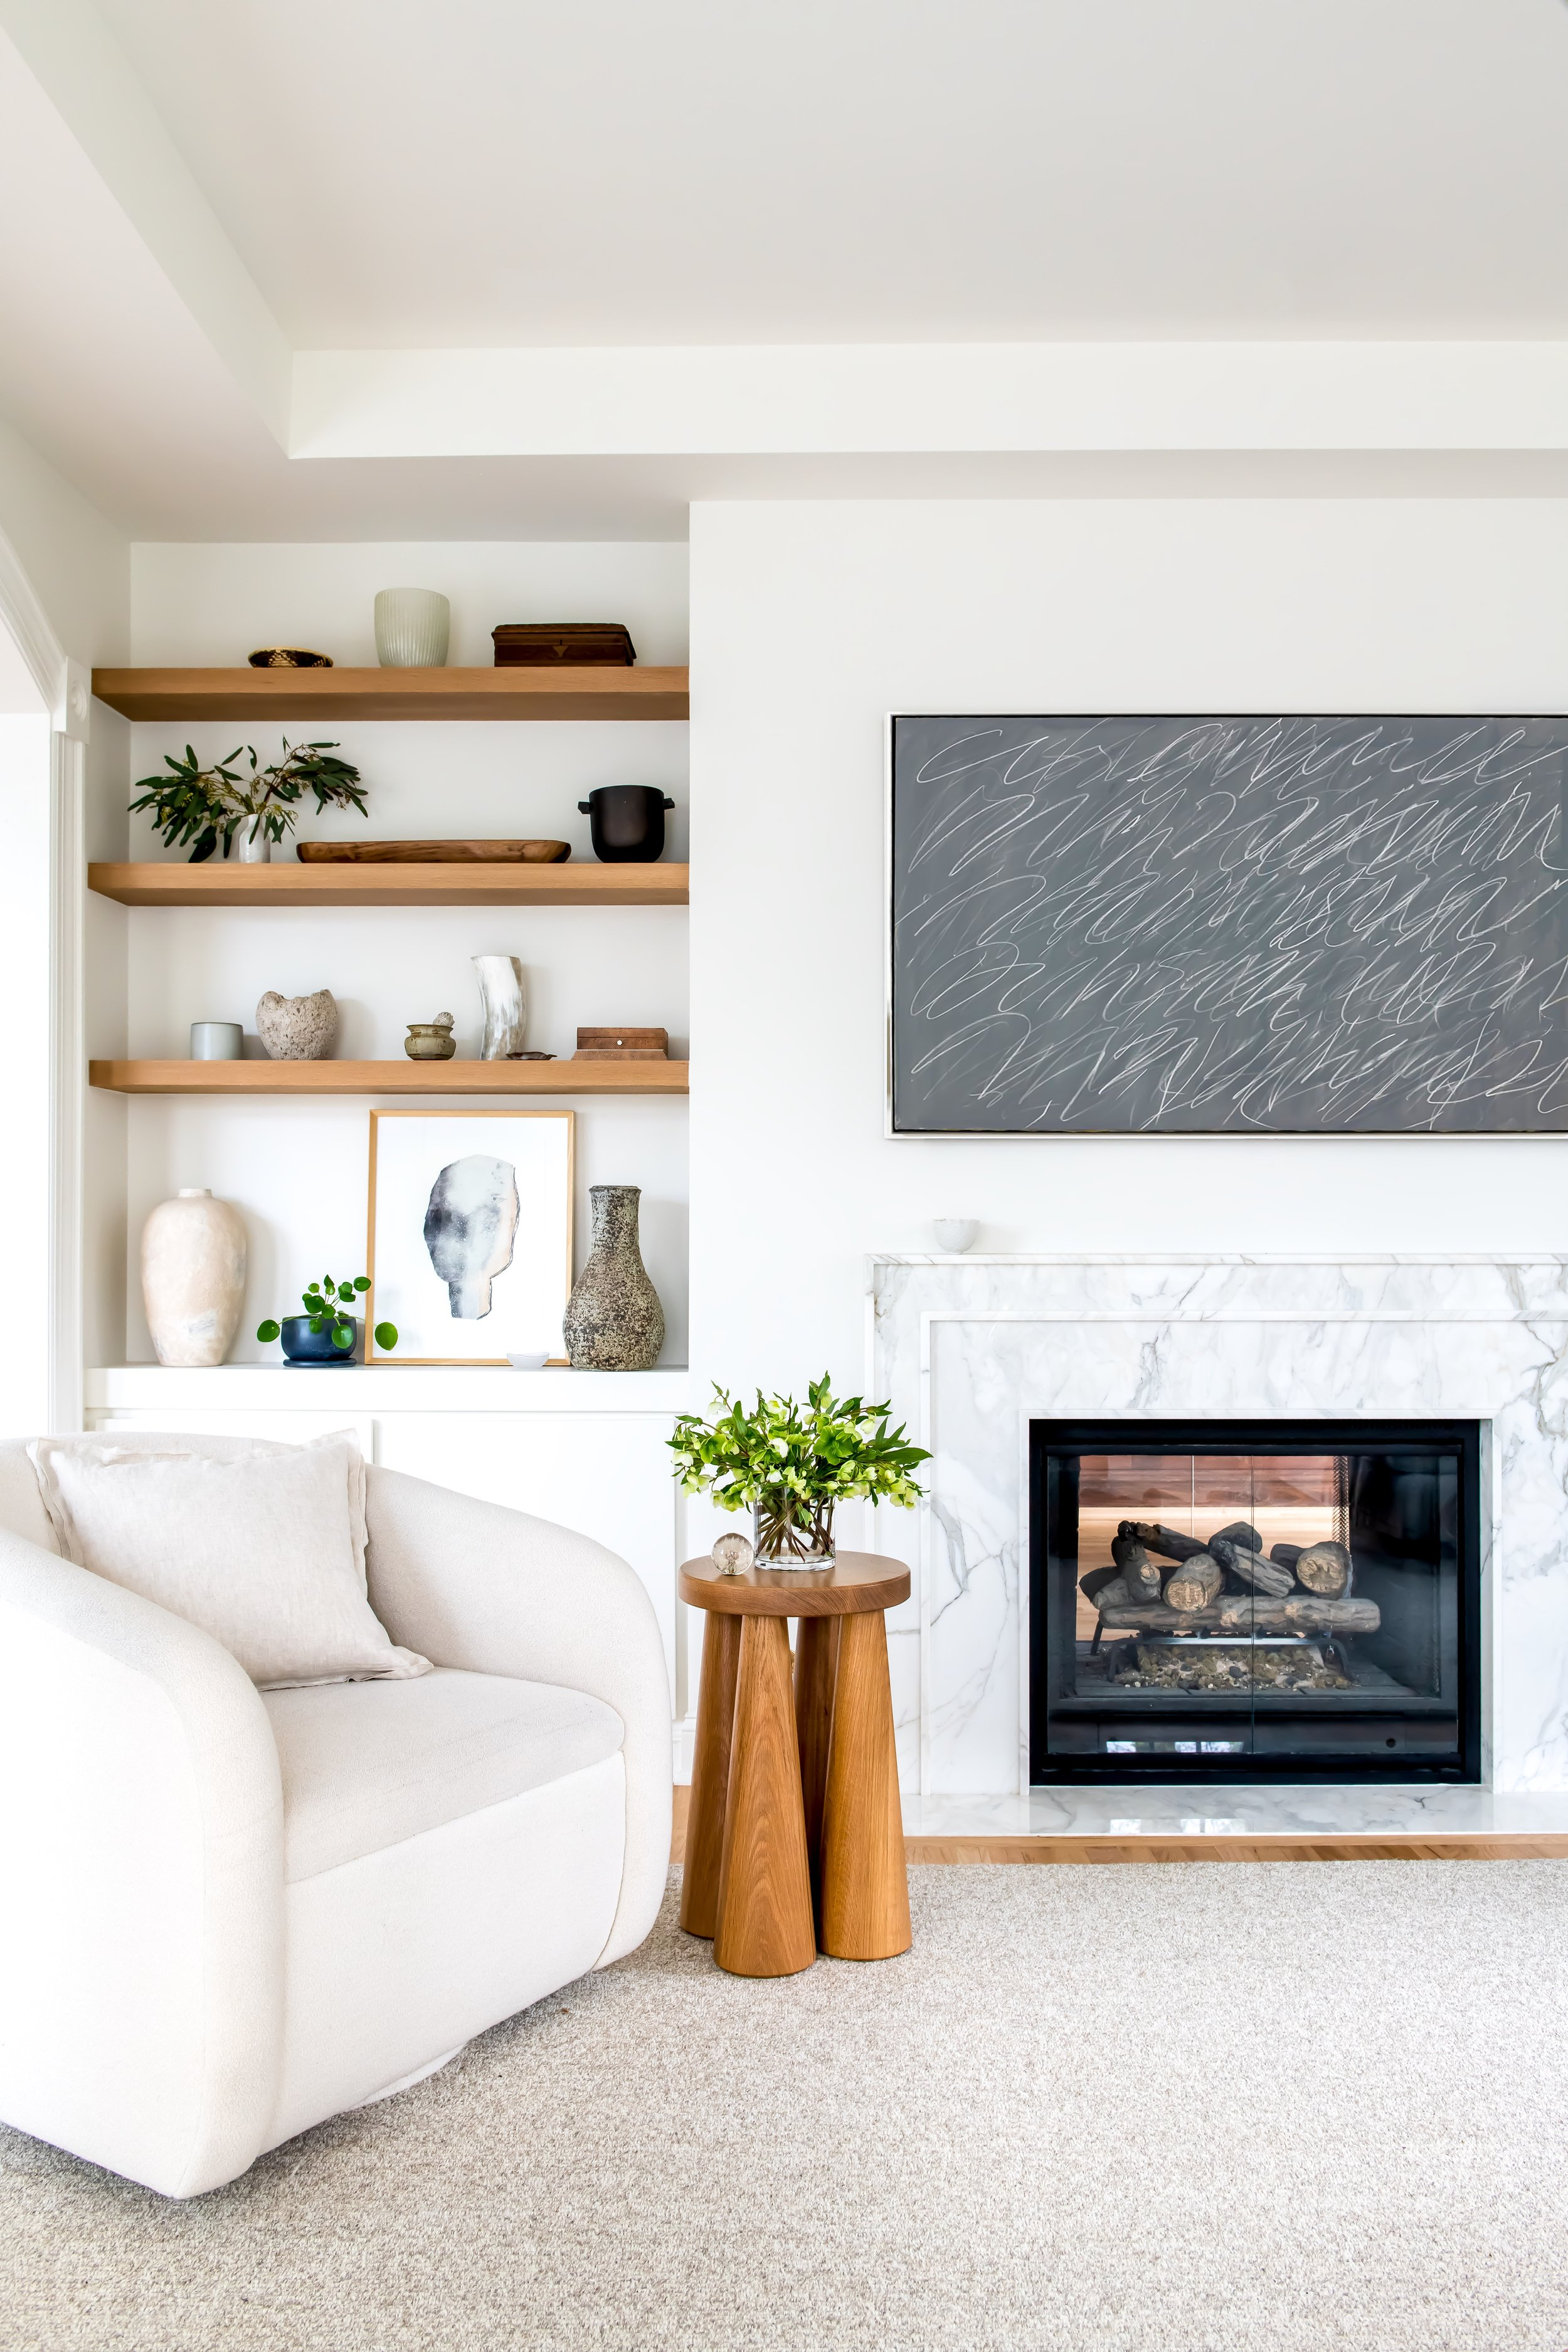 A serene living room layered in neutrals with a custom marble mantel surrounding a double sided firebox painted black under a Samsung Frame TV to display a Cy Twombly piece of art. A custom swivel chair in a Holland & Sherry wool boucle and a sculptural wood side table sourced from 1stdibs sit atop a plush wool rug from Stark Carpet. Custom white washed white oak floating shelves display a collection of beautiful objects including a vintage shagreen box, a horn vessel, and hand made ceramics.